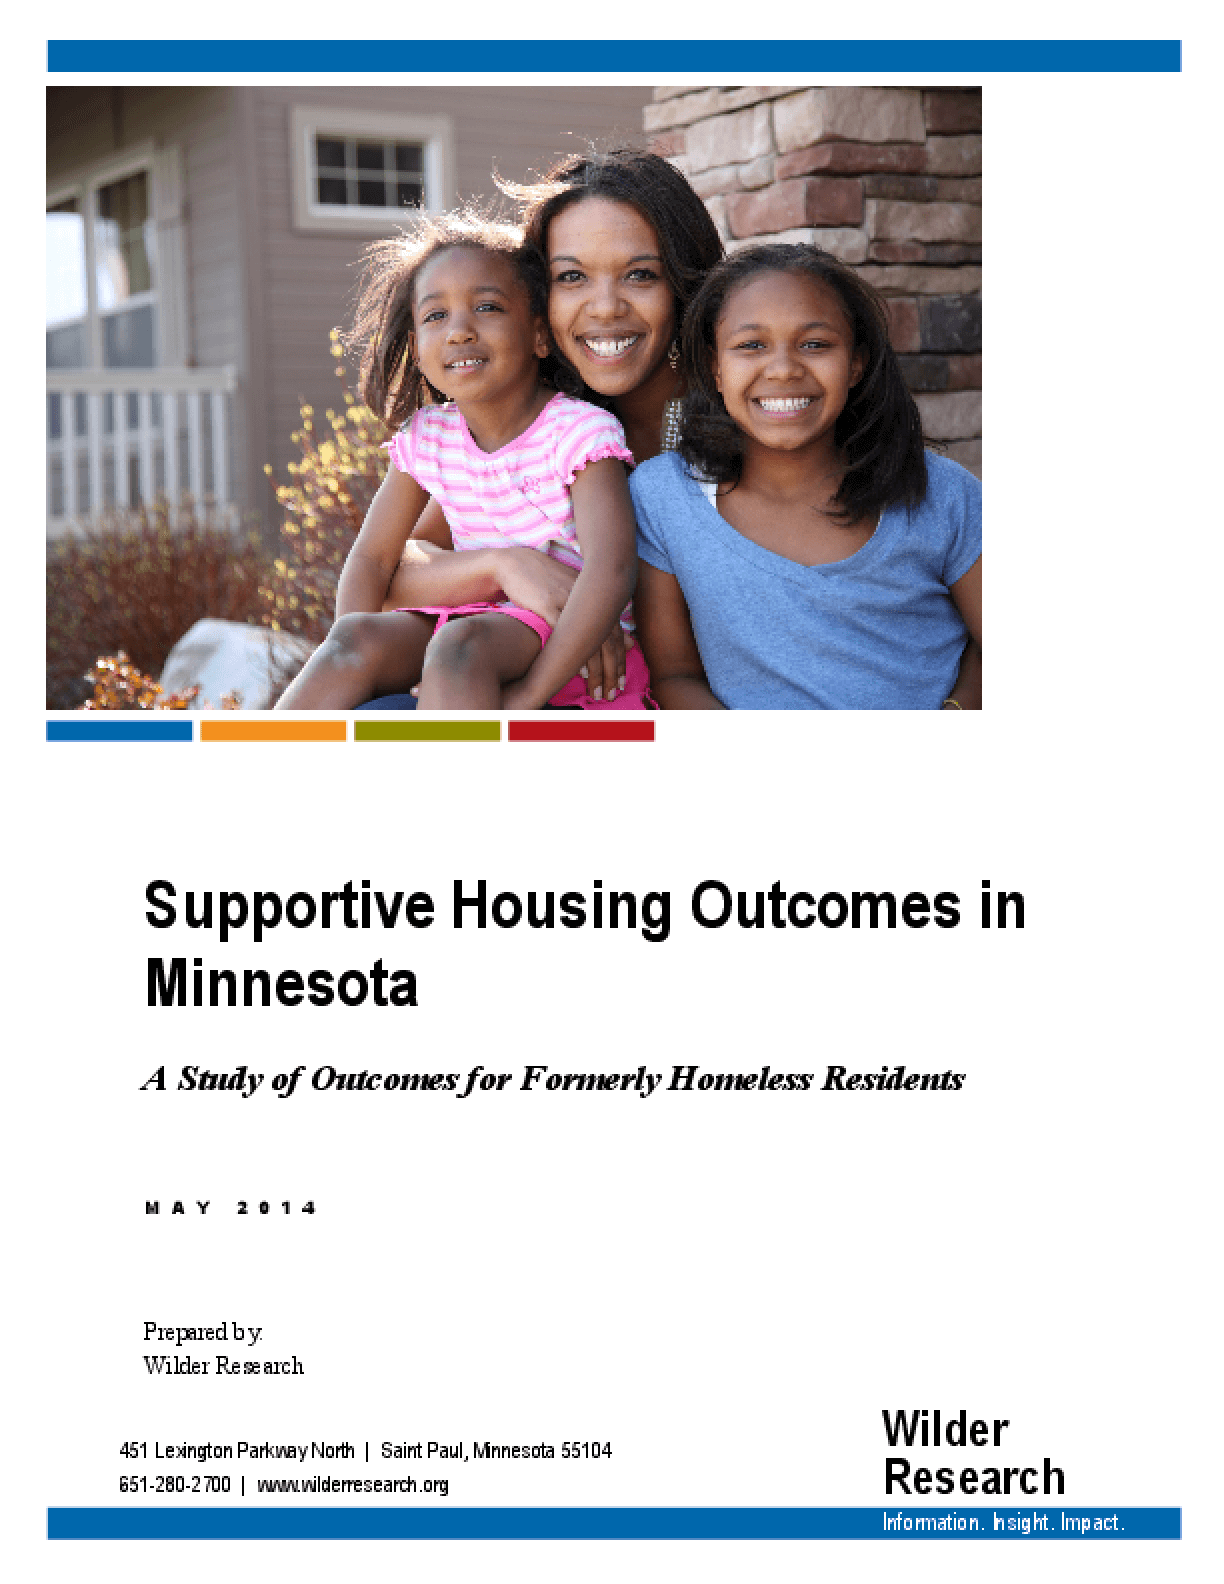 Supportive Housing Outcomes in Minnesota: A Study of Outcomes for Formerly Homeless Residents